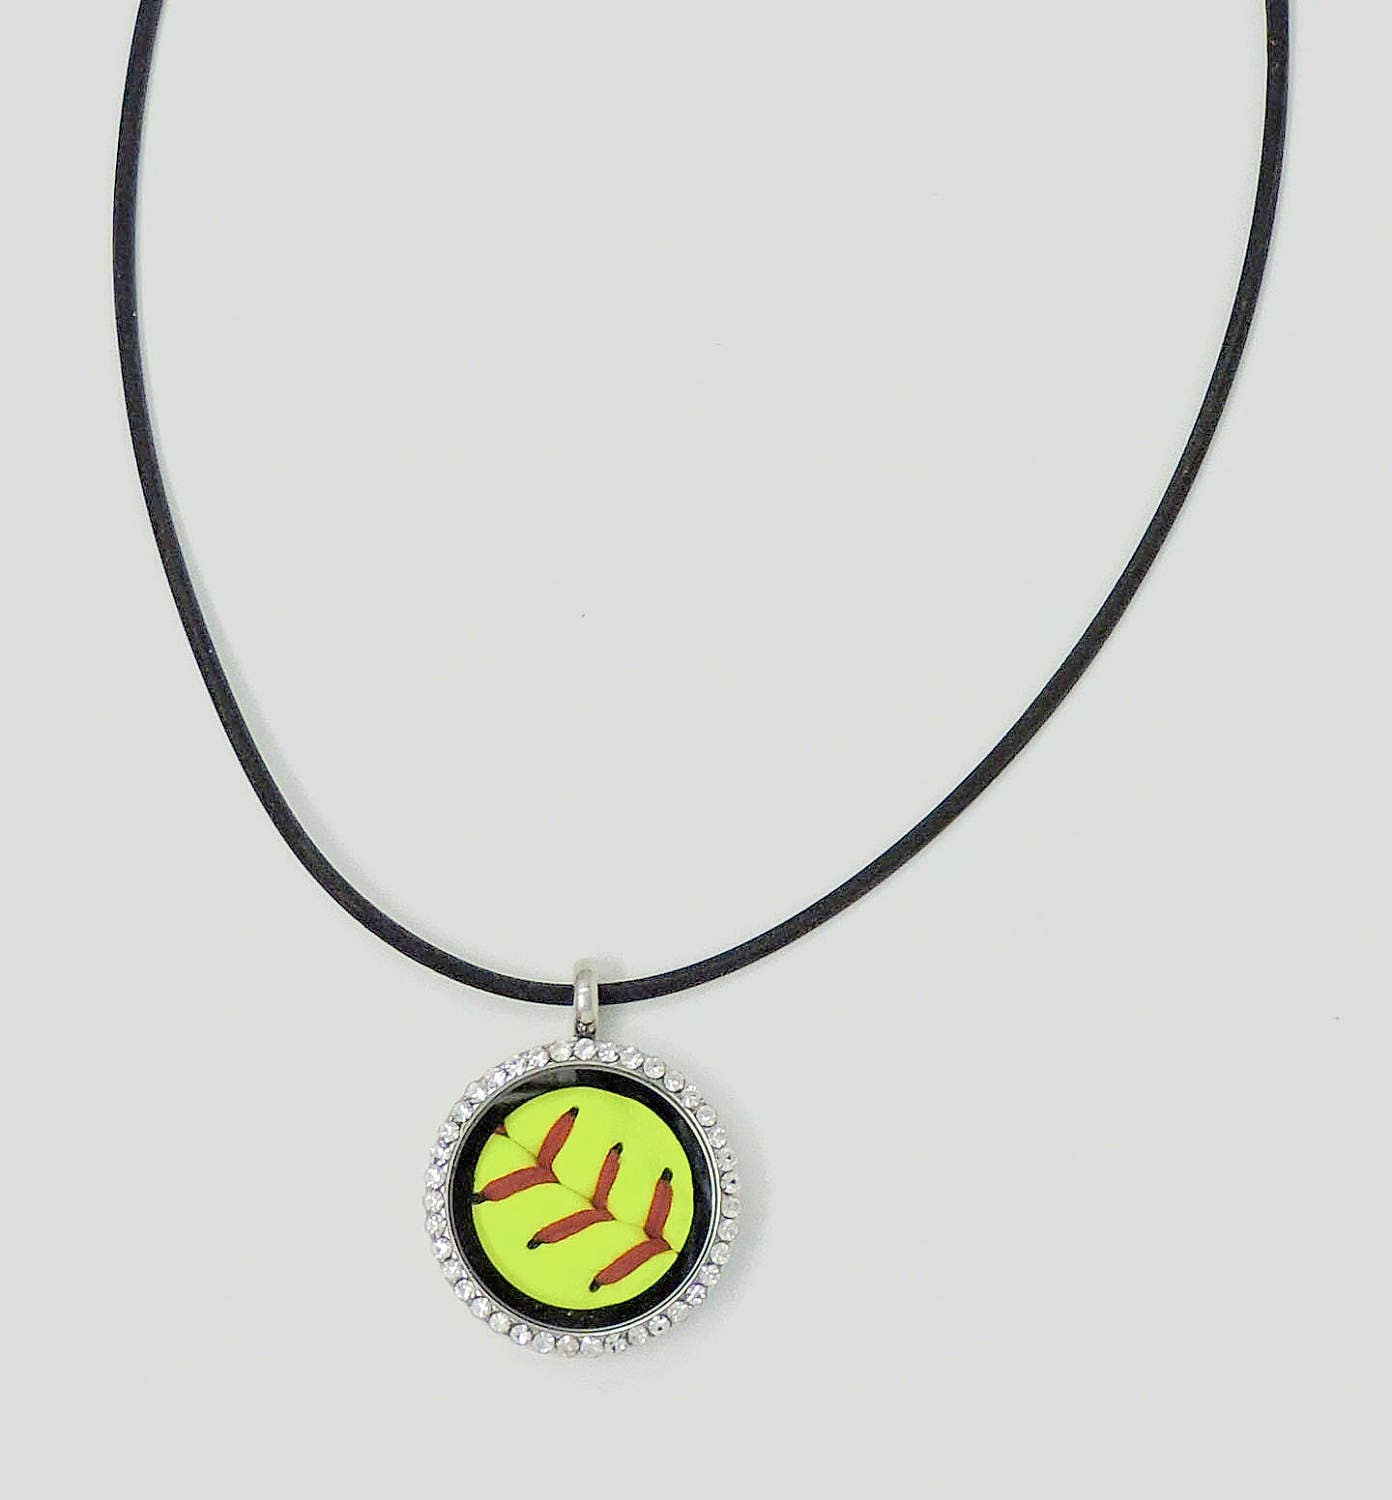 bling sports asset mom softball collections jewelry necklace transformation heart wife